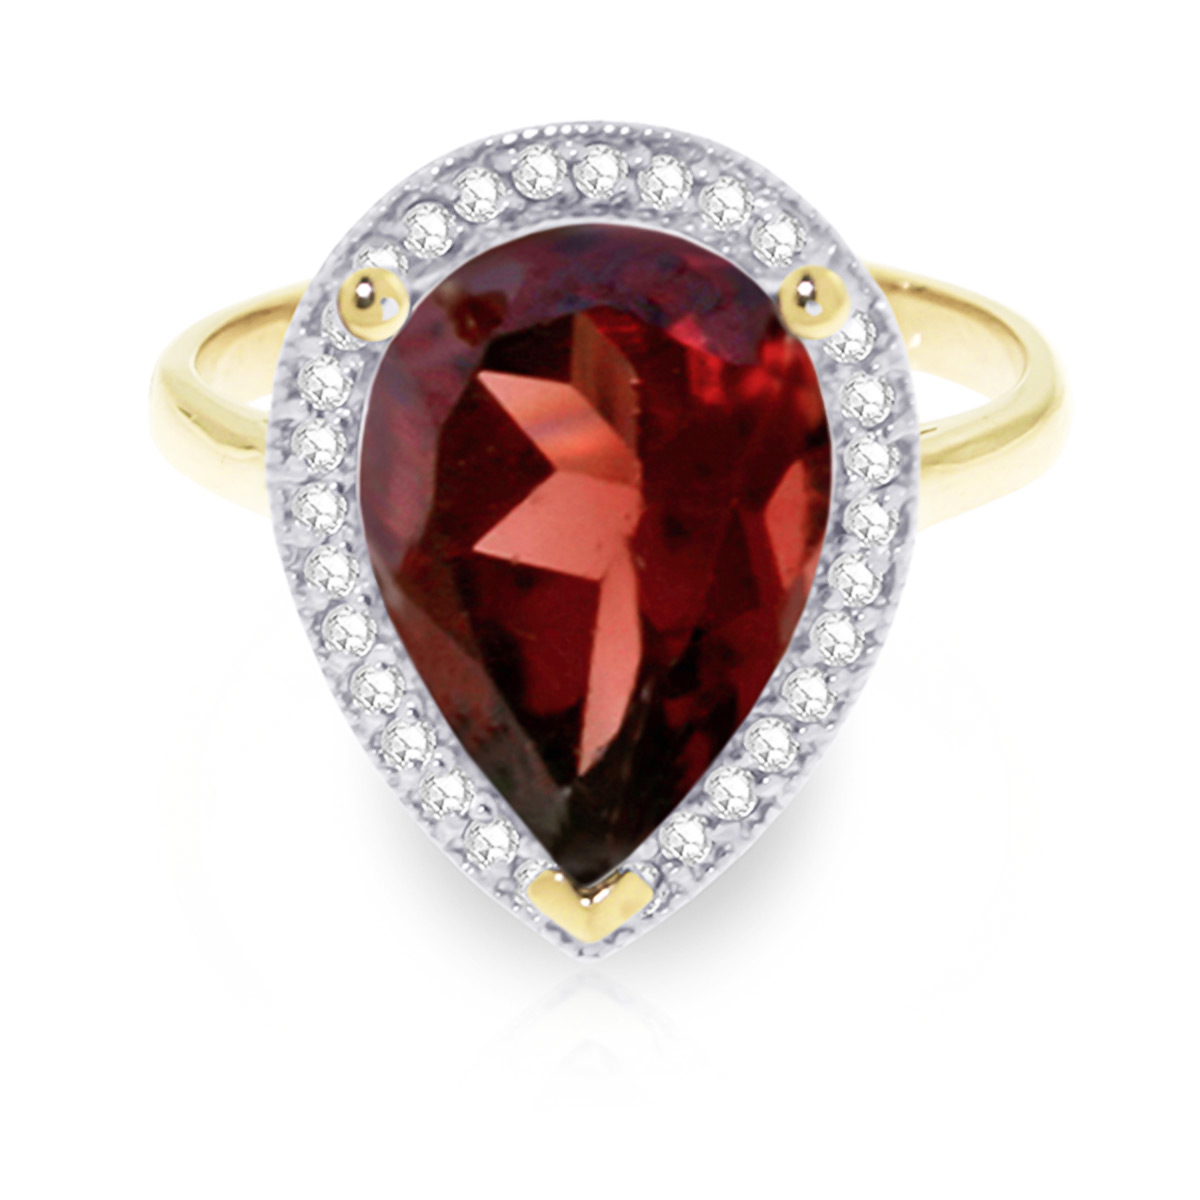 Garnet and Diamond Halo Ring 3.9ct in 9ct Gold